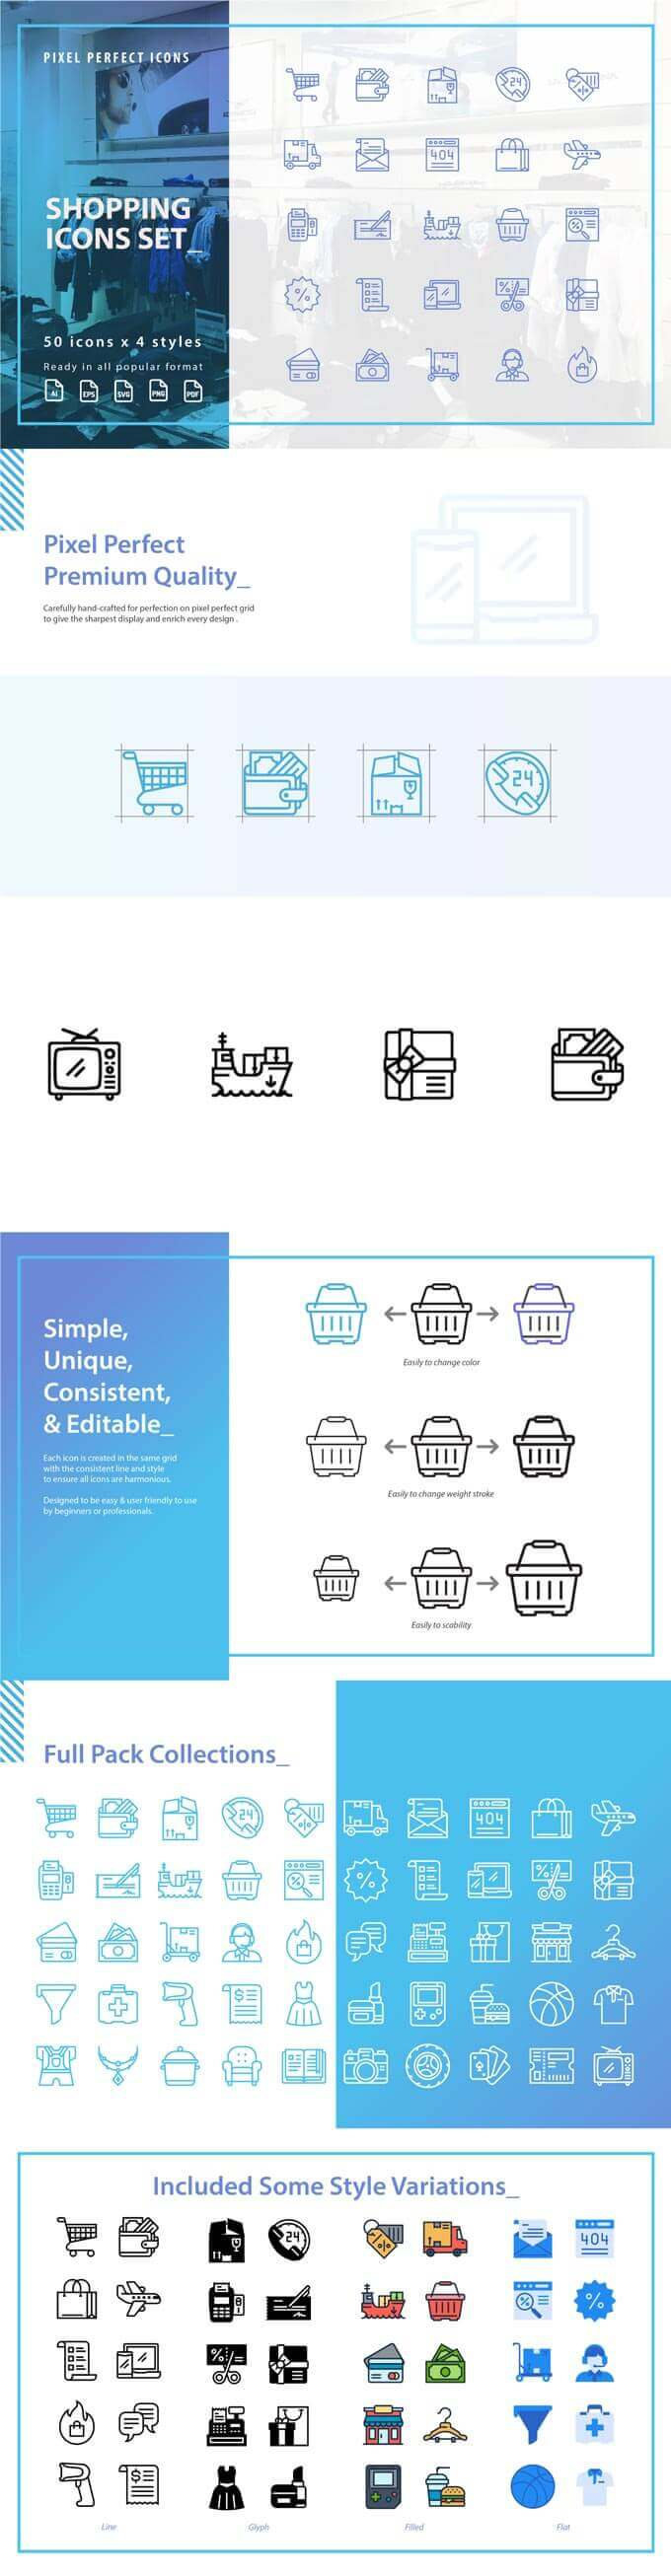 Free Shopping Icons Set